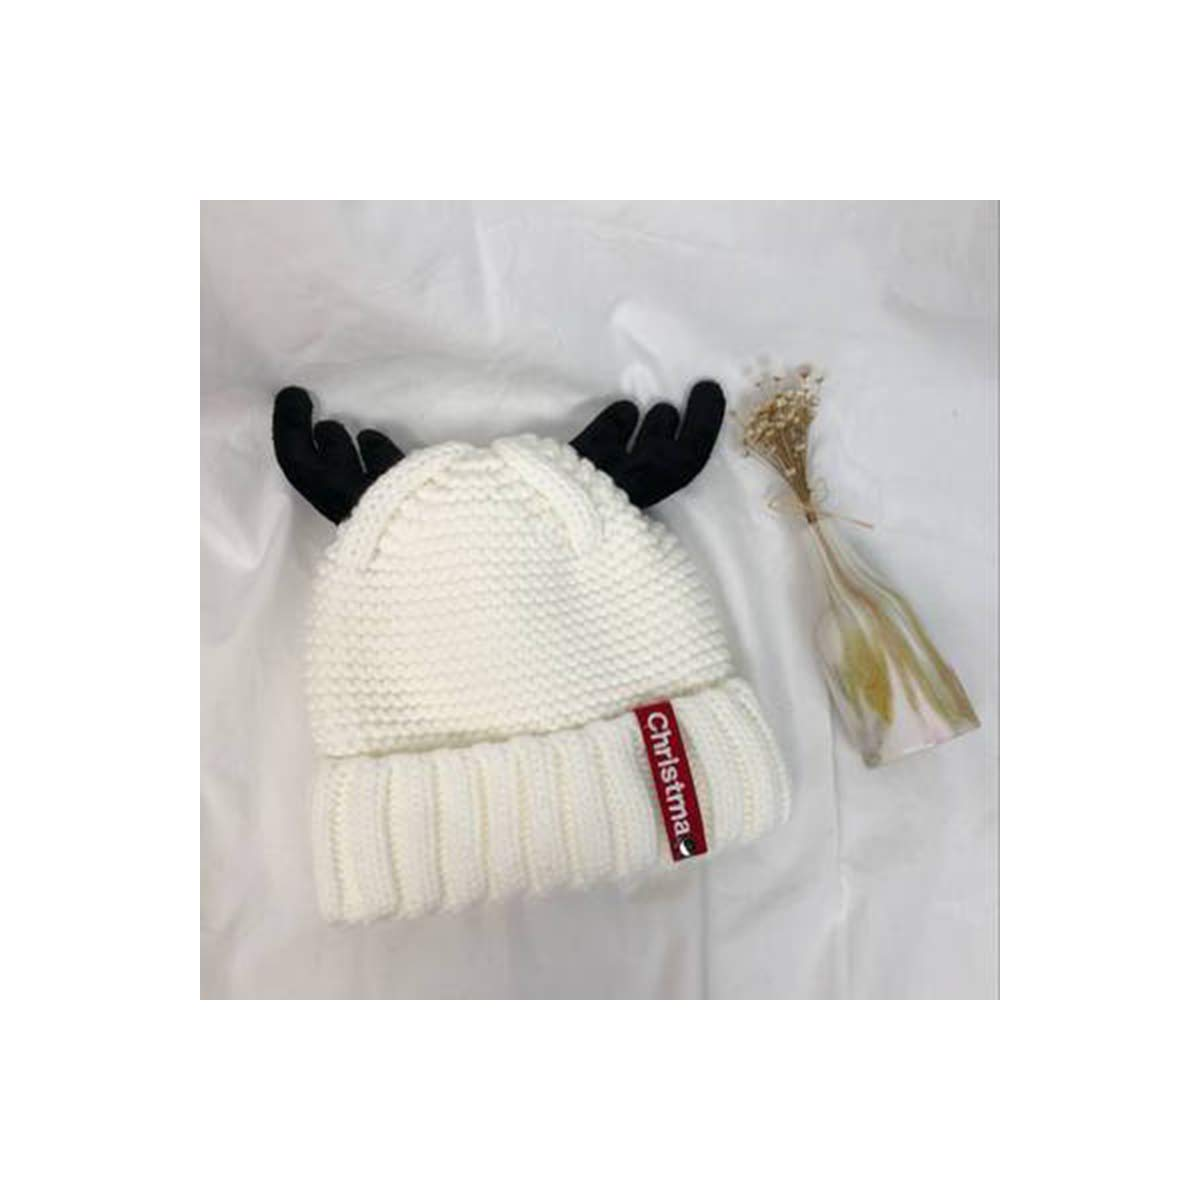 Elk Antler Wool hat Cute Female Warm Thickening Plus Velvet Knitted hat Christmas Year Thanksgiving Gift